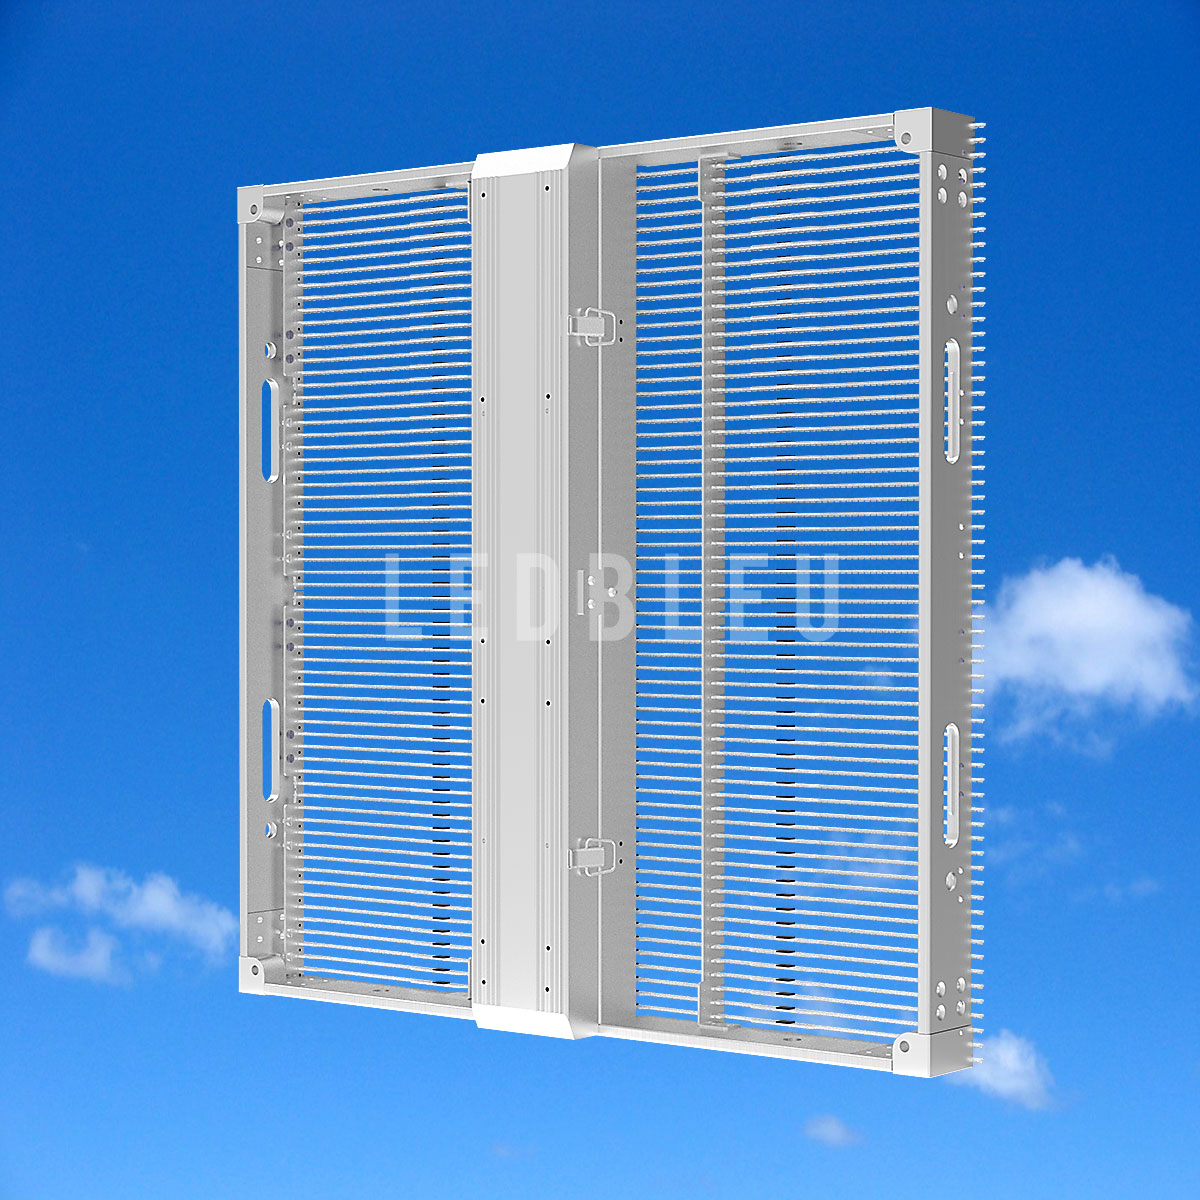 Dalle écran led semi transparent LEDBLEU Vue arriere 50x50